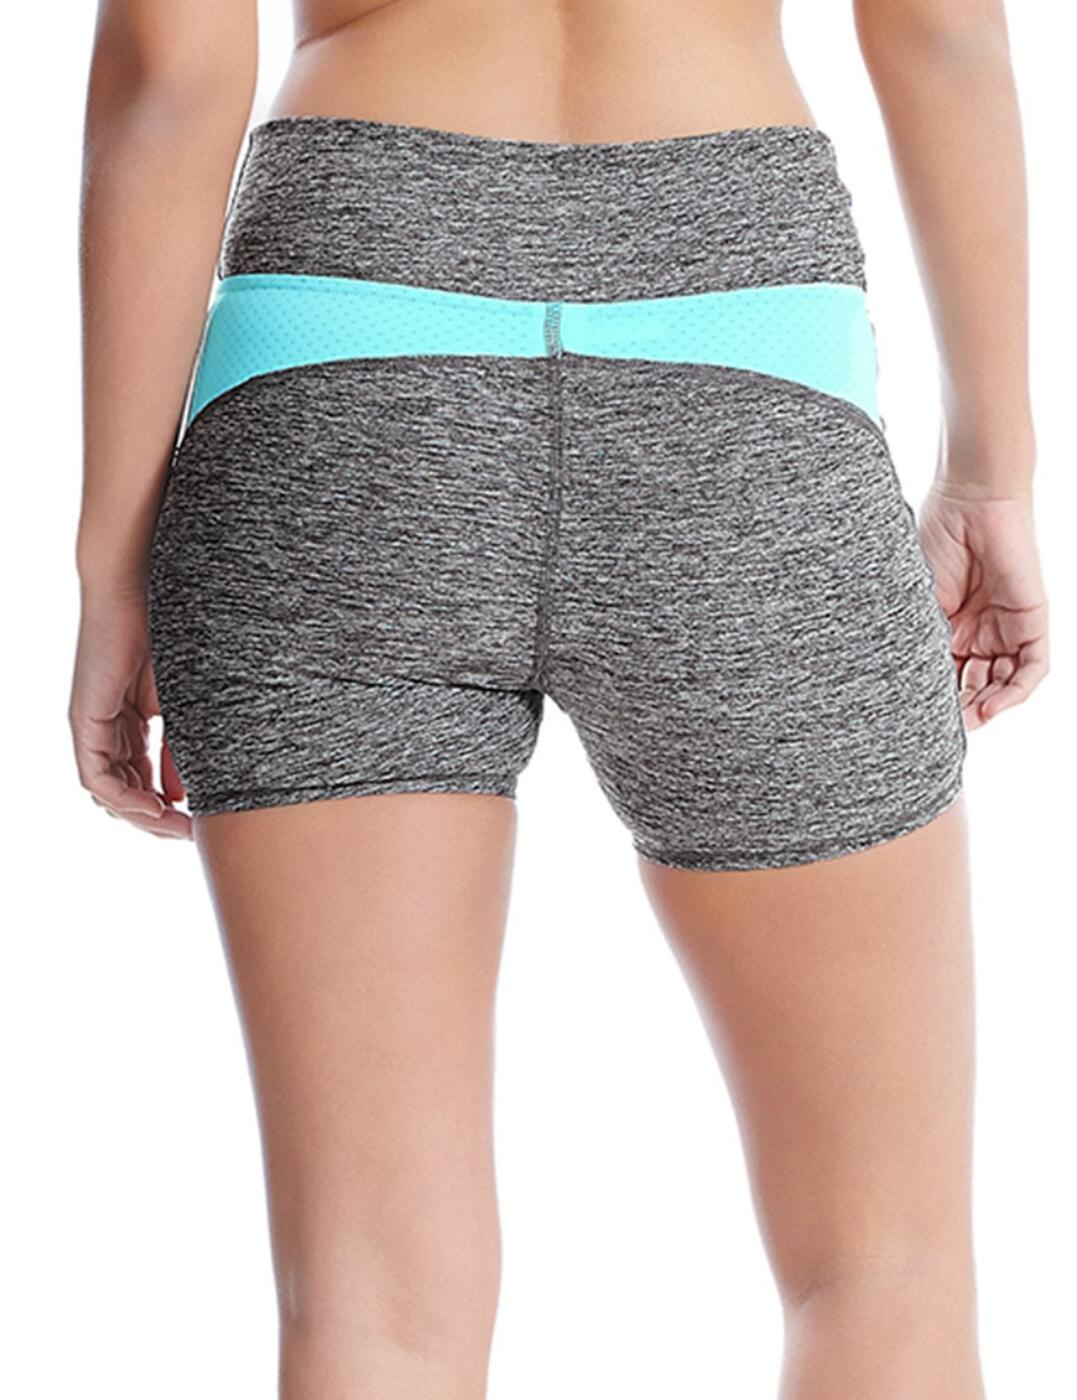 Freya-Active-Reflective-Speed-Fitted-Gym-Short-4019-Gym-wear thumbnail 10